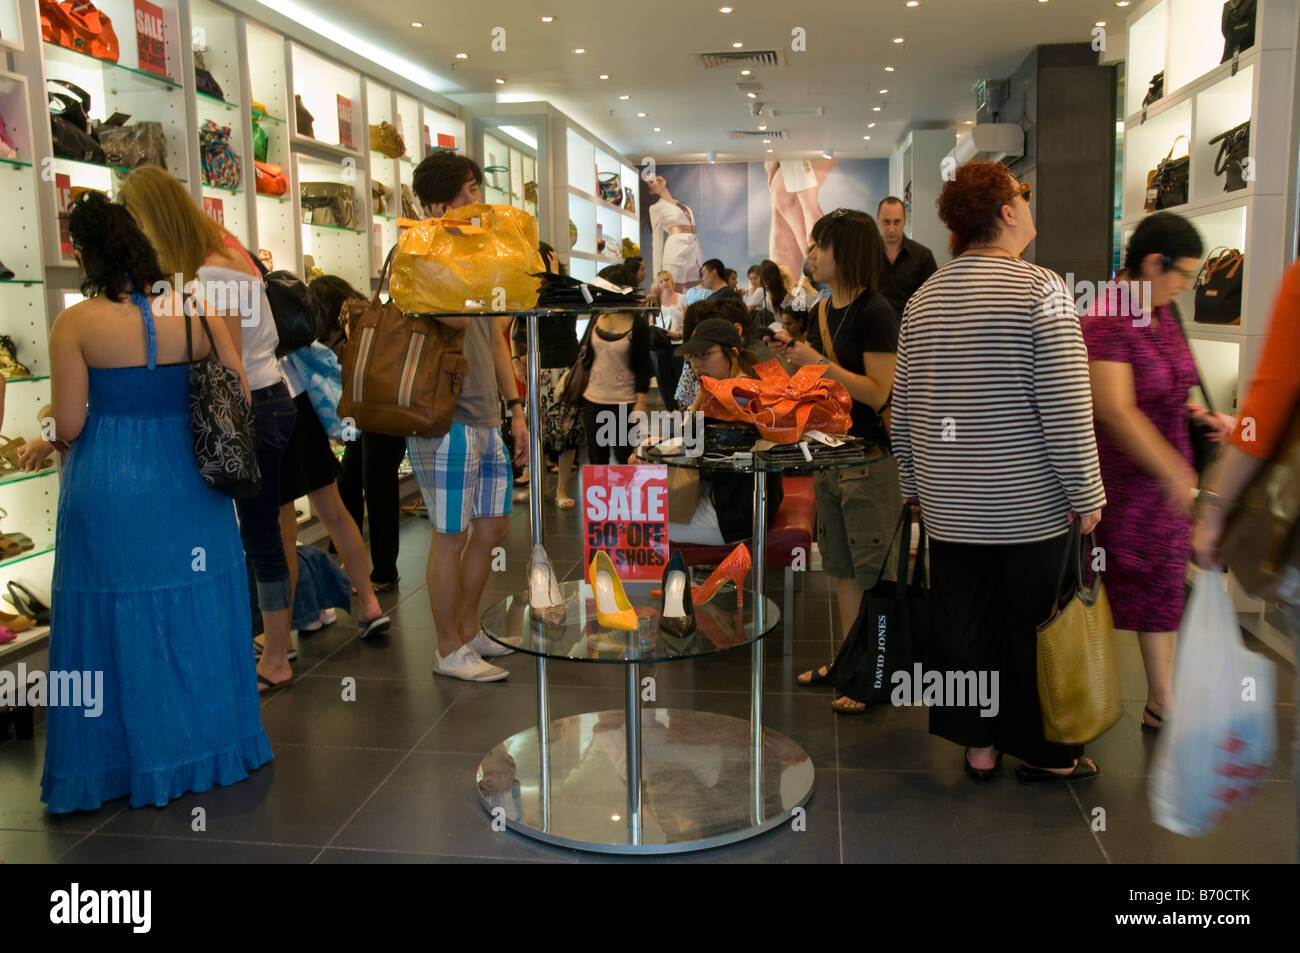 Shopping during the Boxing Day sales in Melbourne Australia - Stock Image